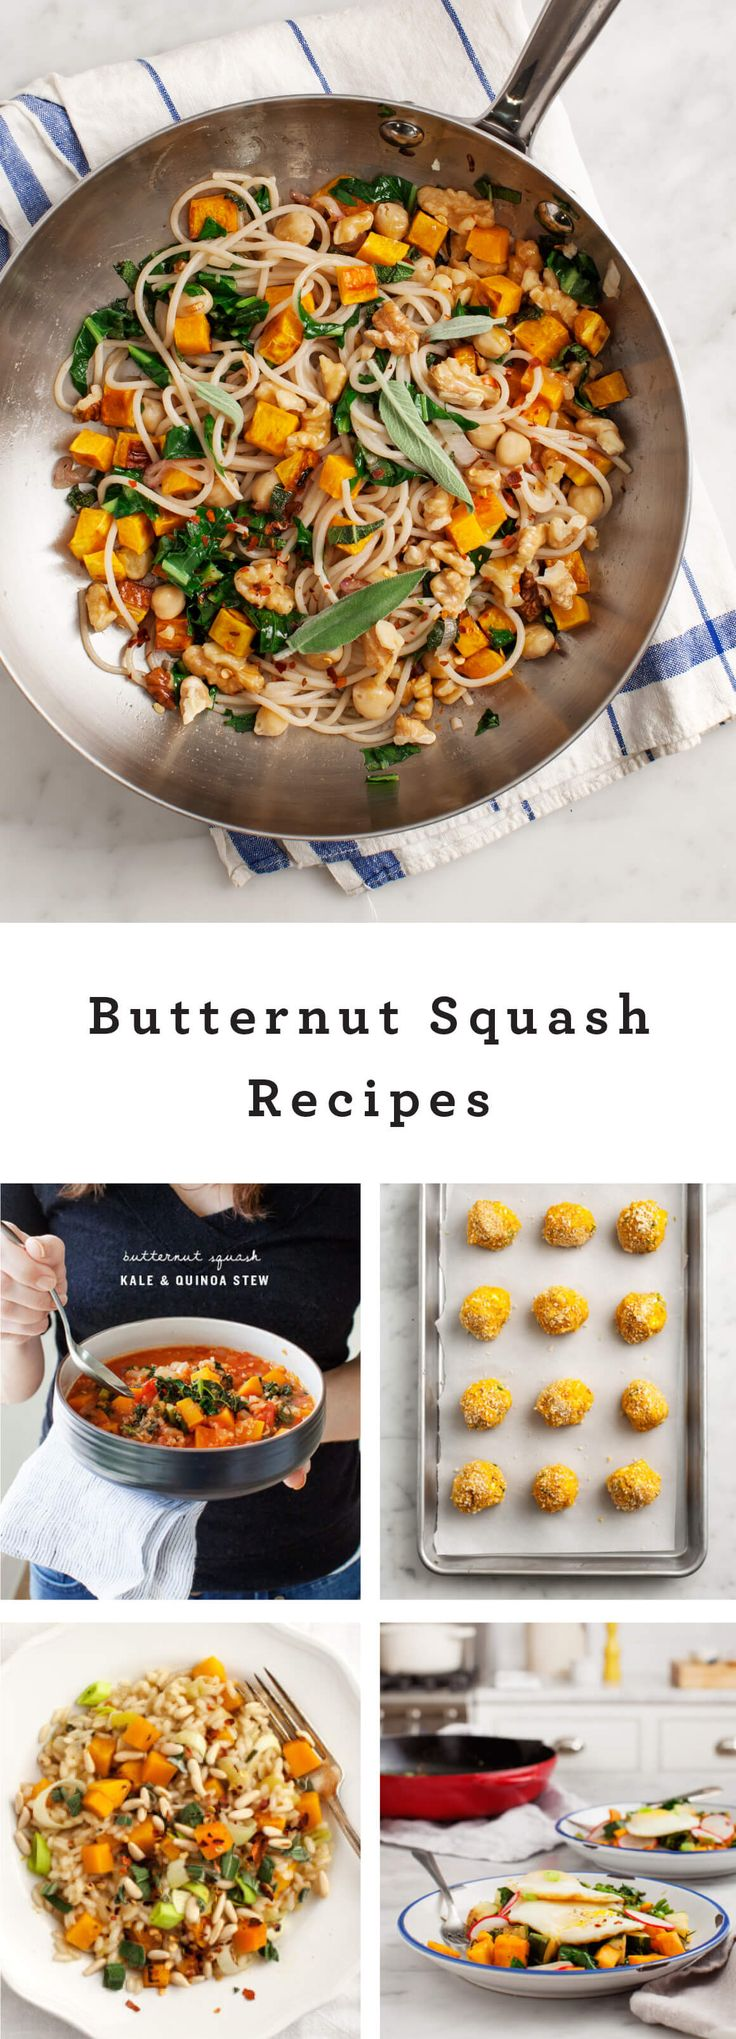 Food Photography :: It's officially fall here in Austin. It's drizzly and cold outside (well, cold-ish) and that makes me want to do nothing more than roast cozy squash-y things in the oven. Here are a bunch of my favorite butternut squash recipes – what are yours? Butternut Squash Walnut & Sage Pasta Butternut Squash Kale & Quinoa Stew Butternut Squash Croquettes Butternut Squash & Leek Risotto Butternut Squash Breakfast Hash Rosemary Roasted Veggies Butternut Squash & Tart Cherry Quinoa…